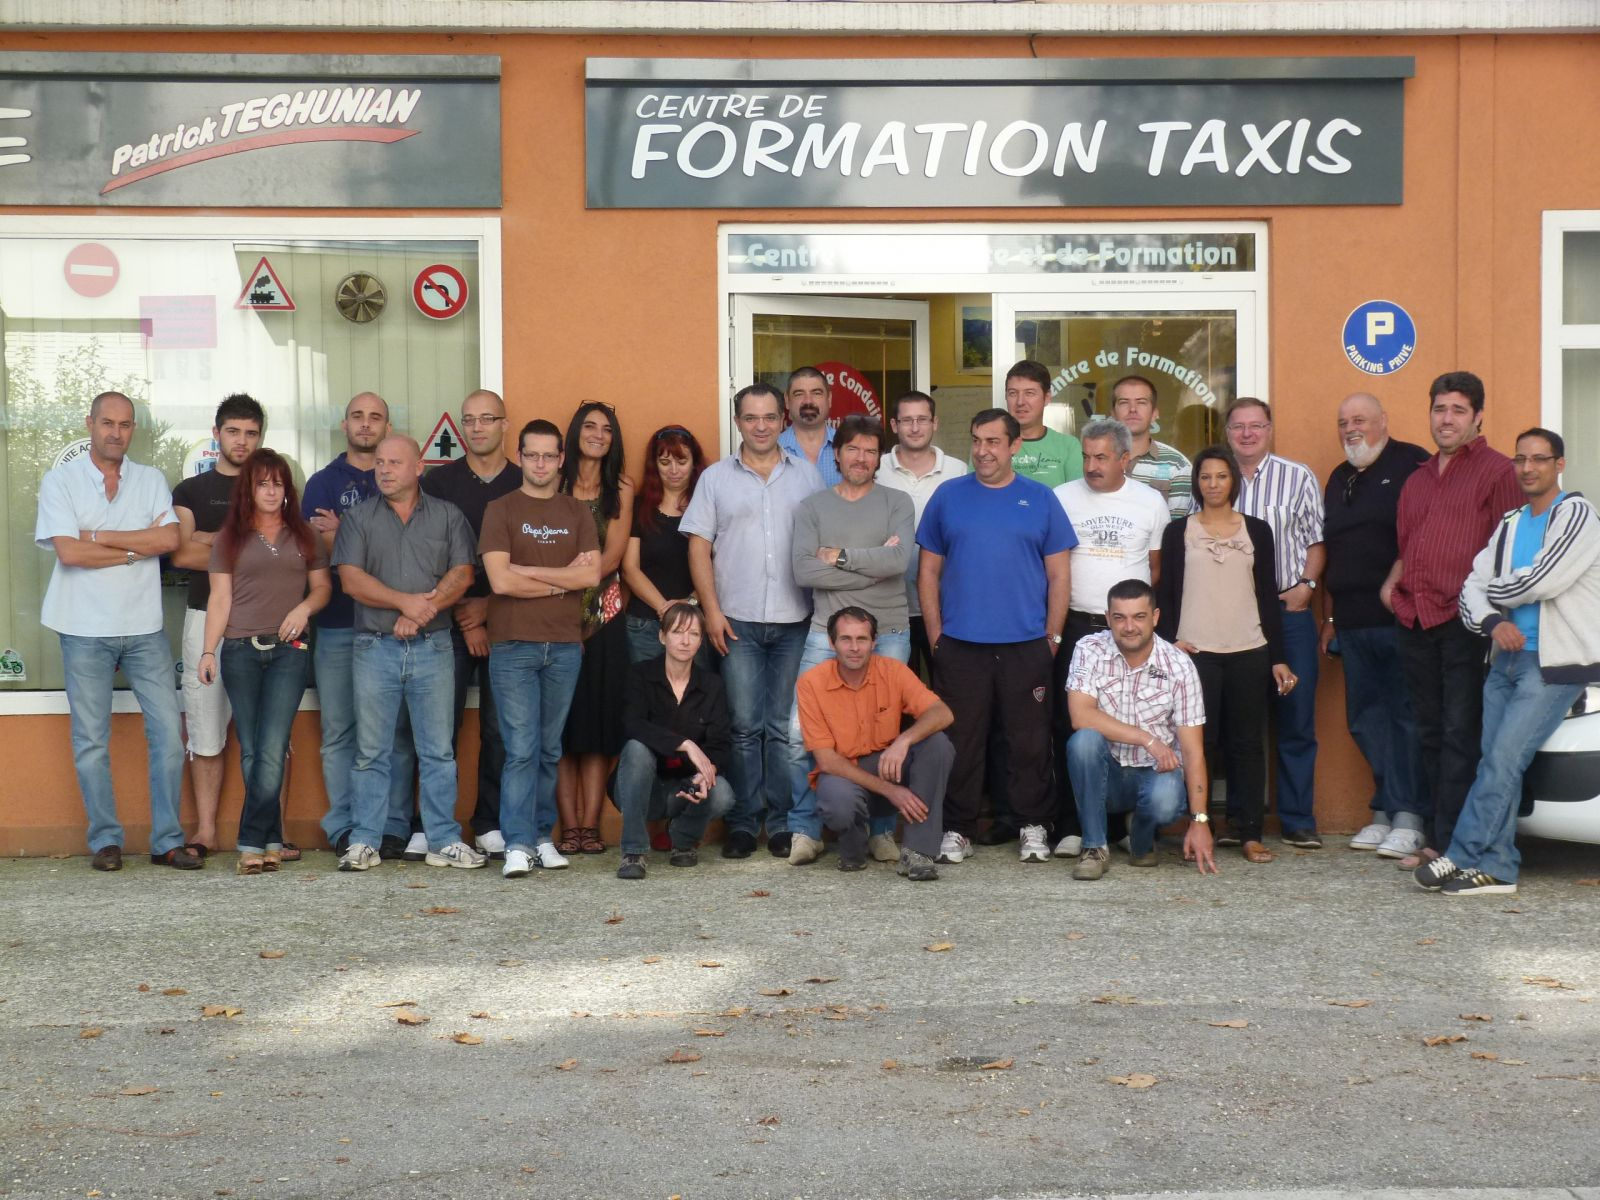 Session de formation taxi DROME ARDECHE